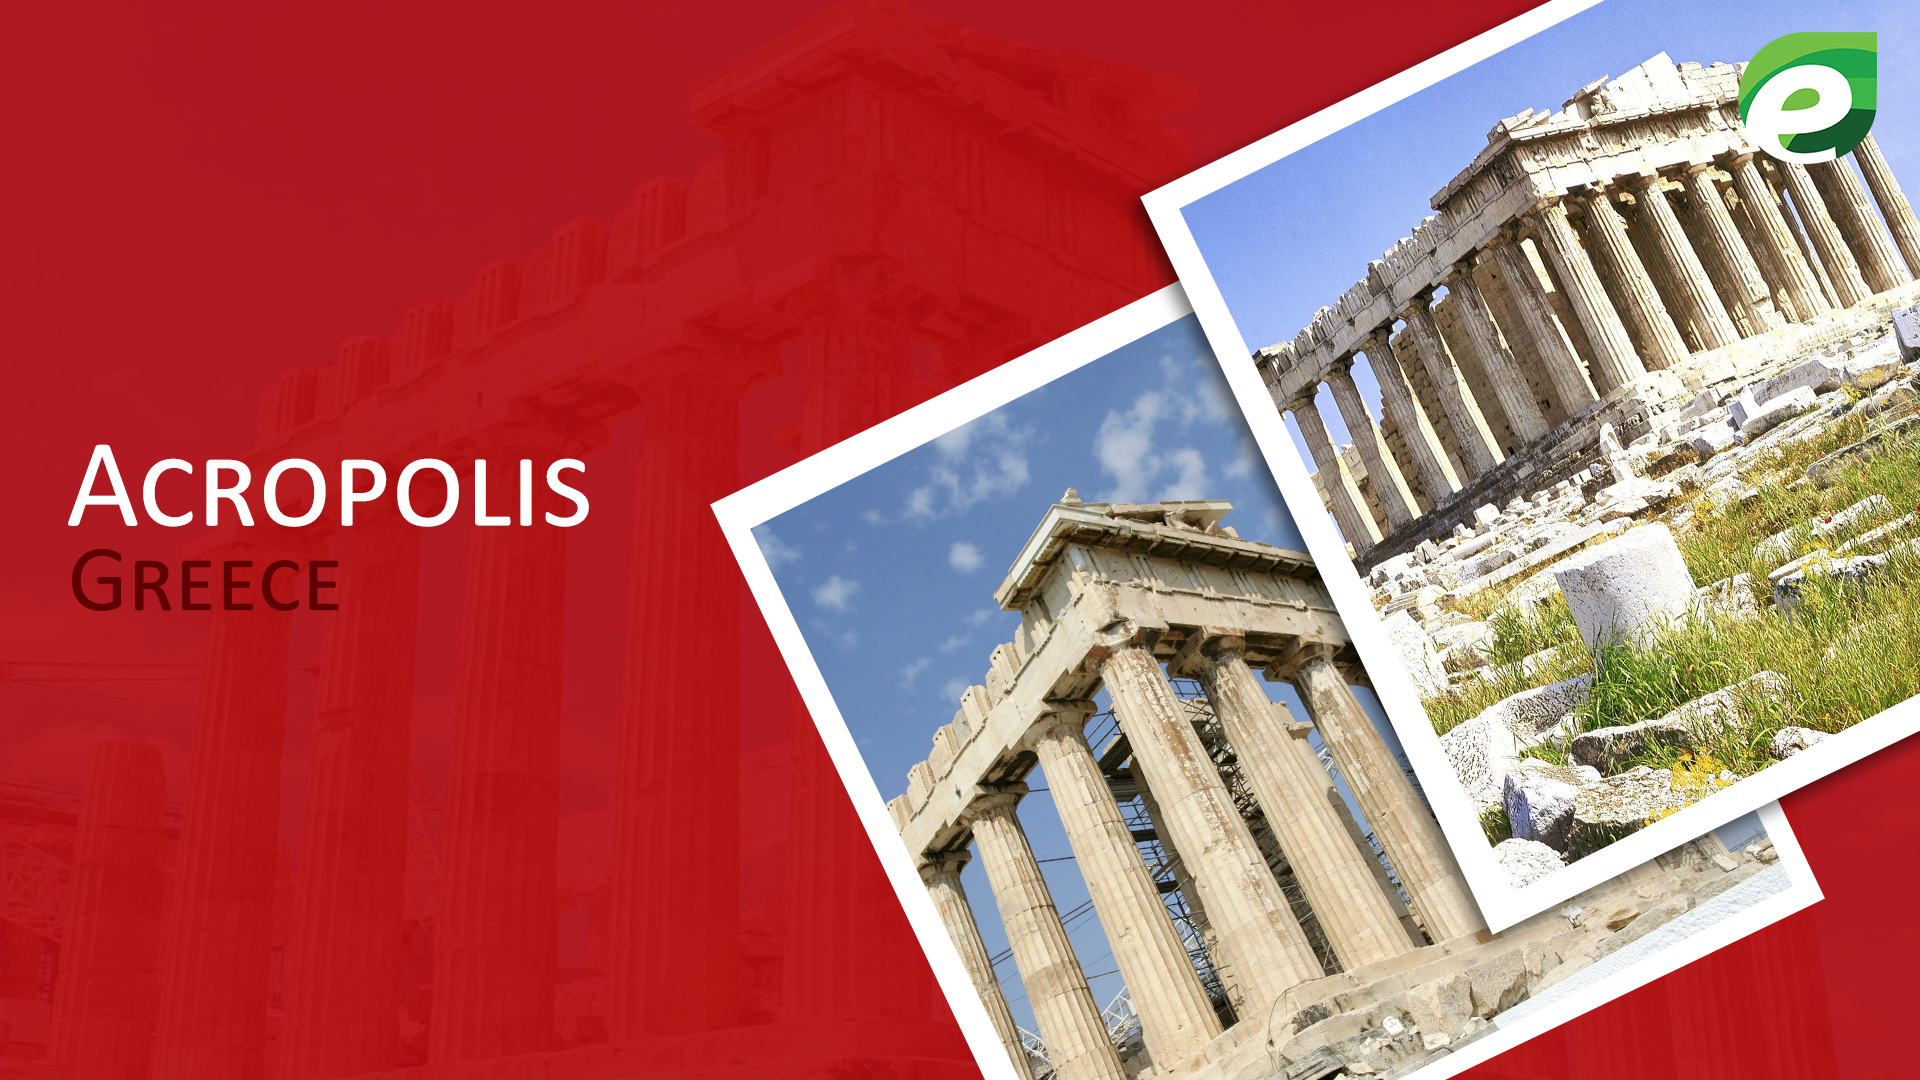 historical sites to visit- Acropolis